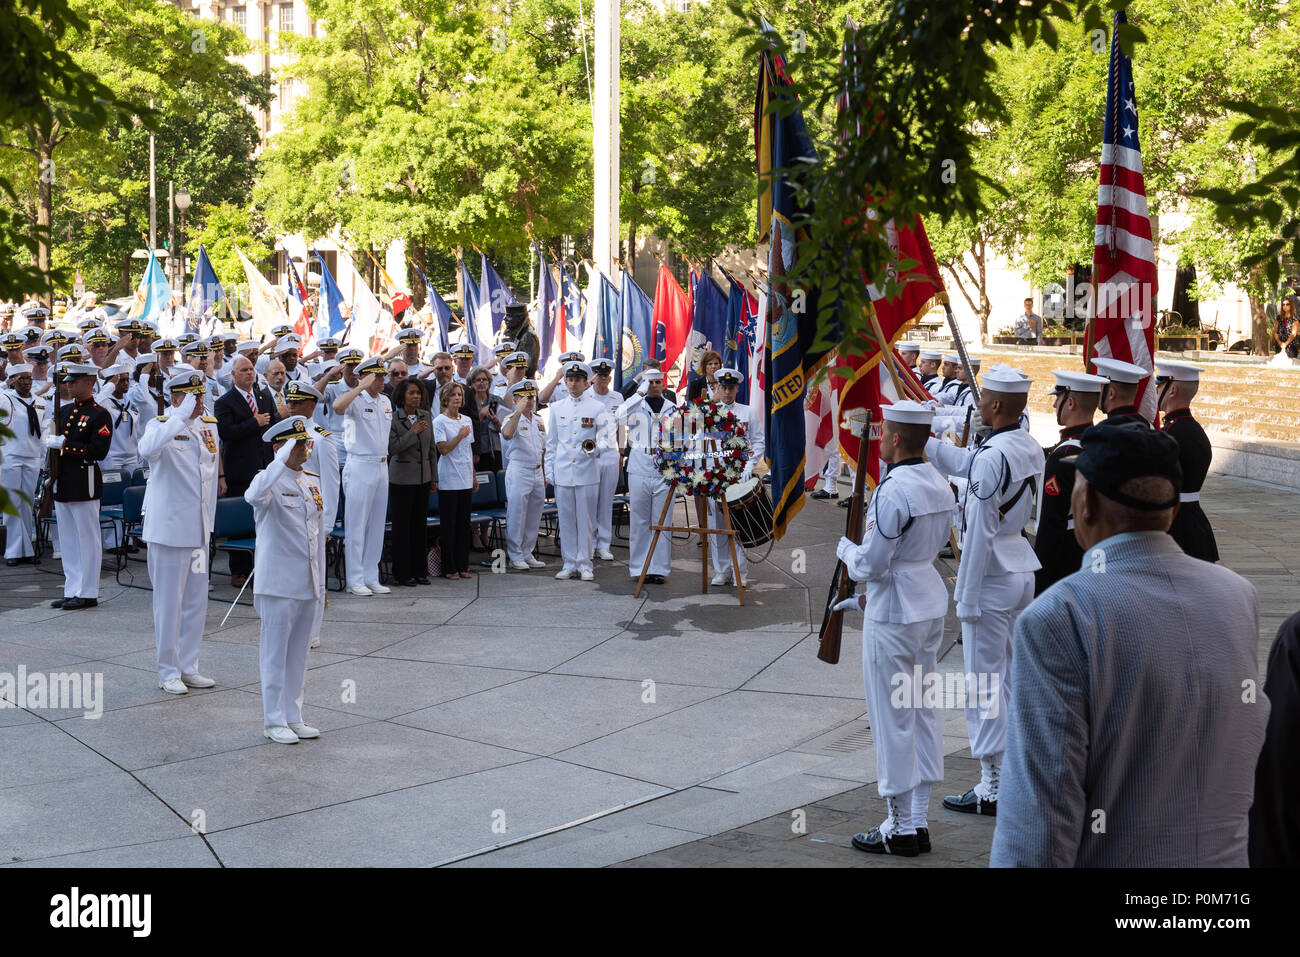 180605-N-HG258-1089 WASHINGTON (June 5, 2018) The Vice Chief of Naval Operations, Adm. Bill Moran lays a wreath at the U.S. Navy Memorial in Washington, D.C., during the commemoration of the 76th anniversary of the Battle of Midway. The Battle of Midway began on June 4 in 1942 and stands as one of the U.S. Navy's most historically significant naval battles. Fought on the high seas of the Pacific more than half a century ago, this battle altered the course of the war in the Pacific and thereby shaped the outcome of world events. (U.S. Navy photo by Senior Chief Musician Stephen Hassay/Released) - Stock Image